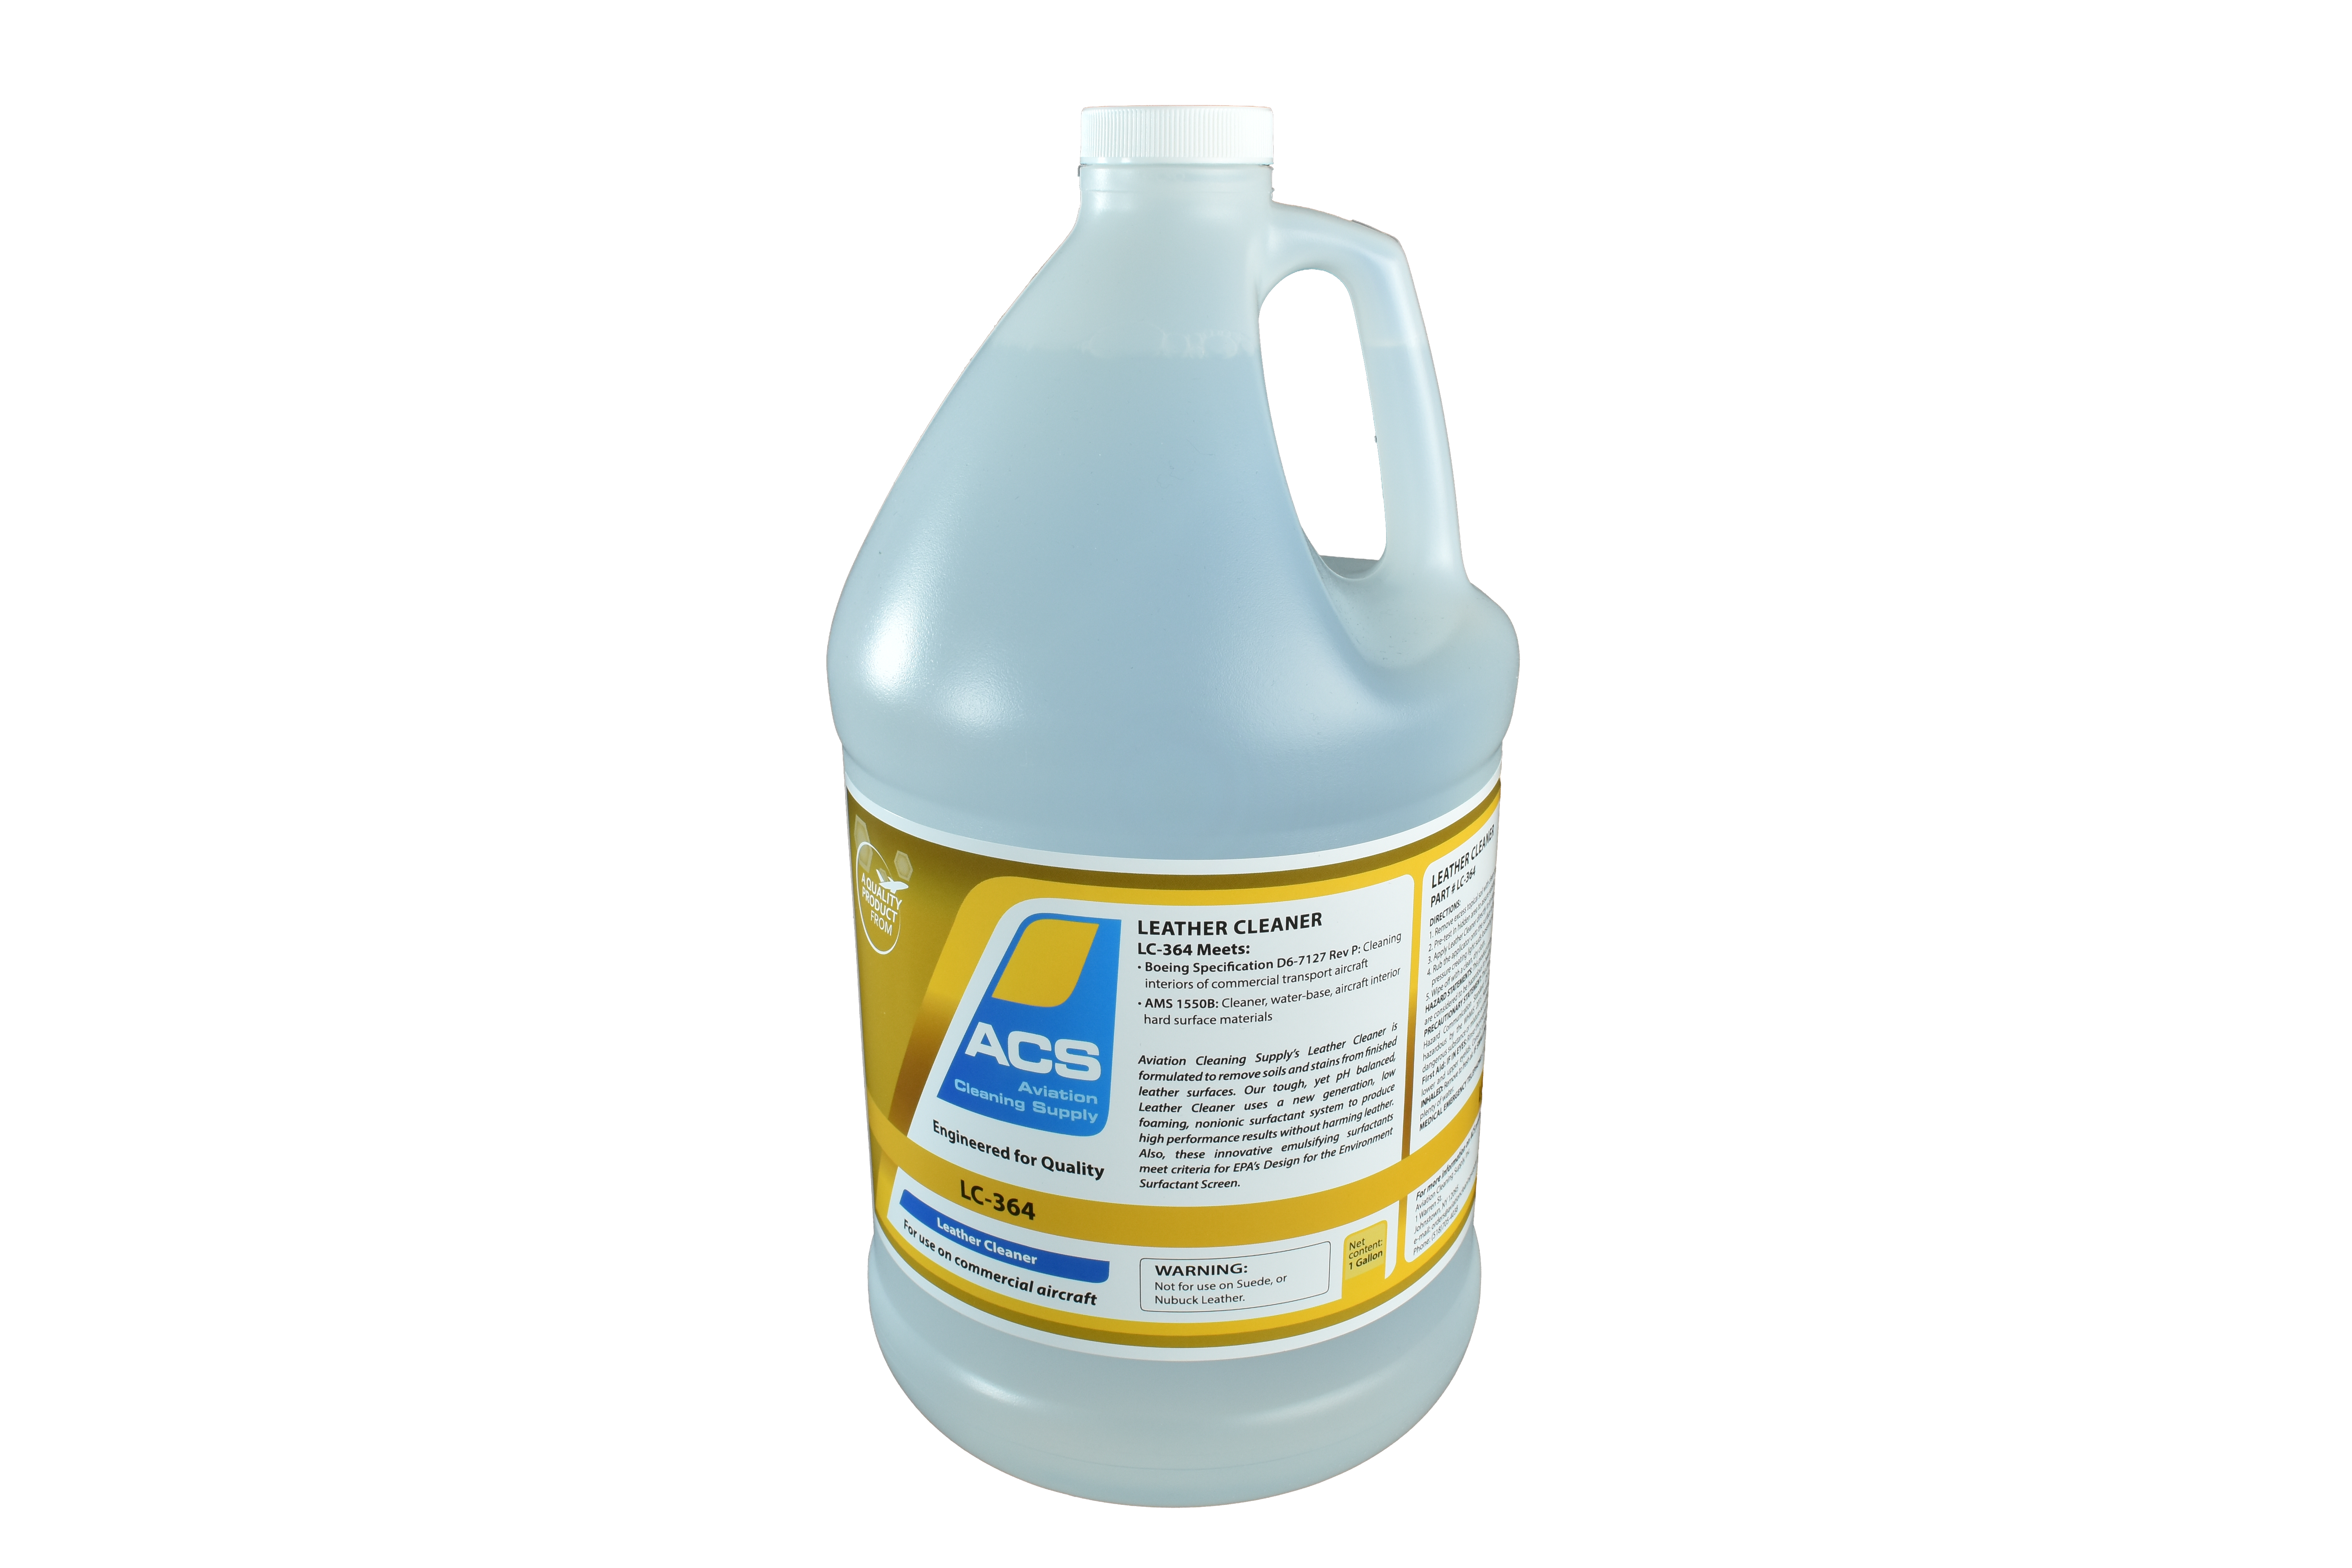 LC-364 Leather Cleaner 1 Gallon-web